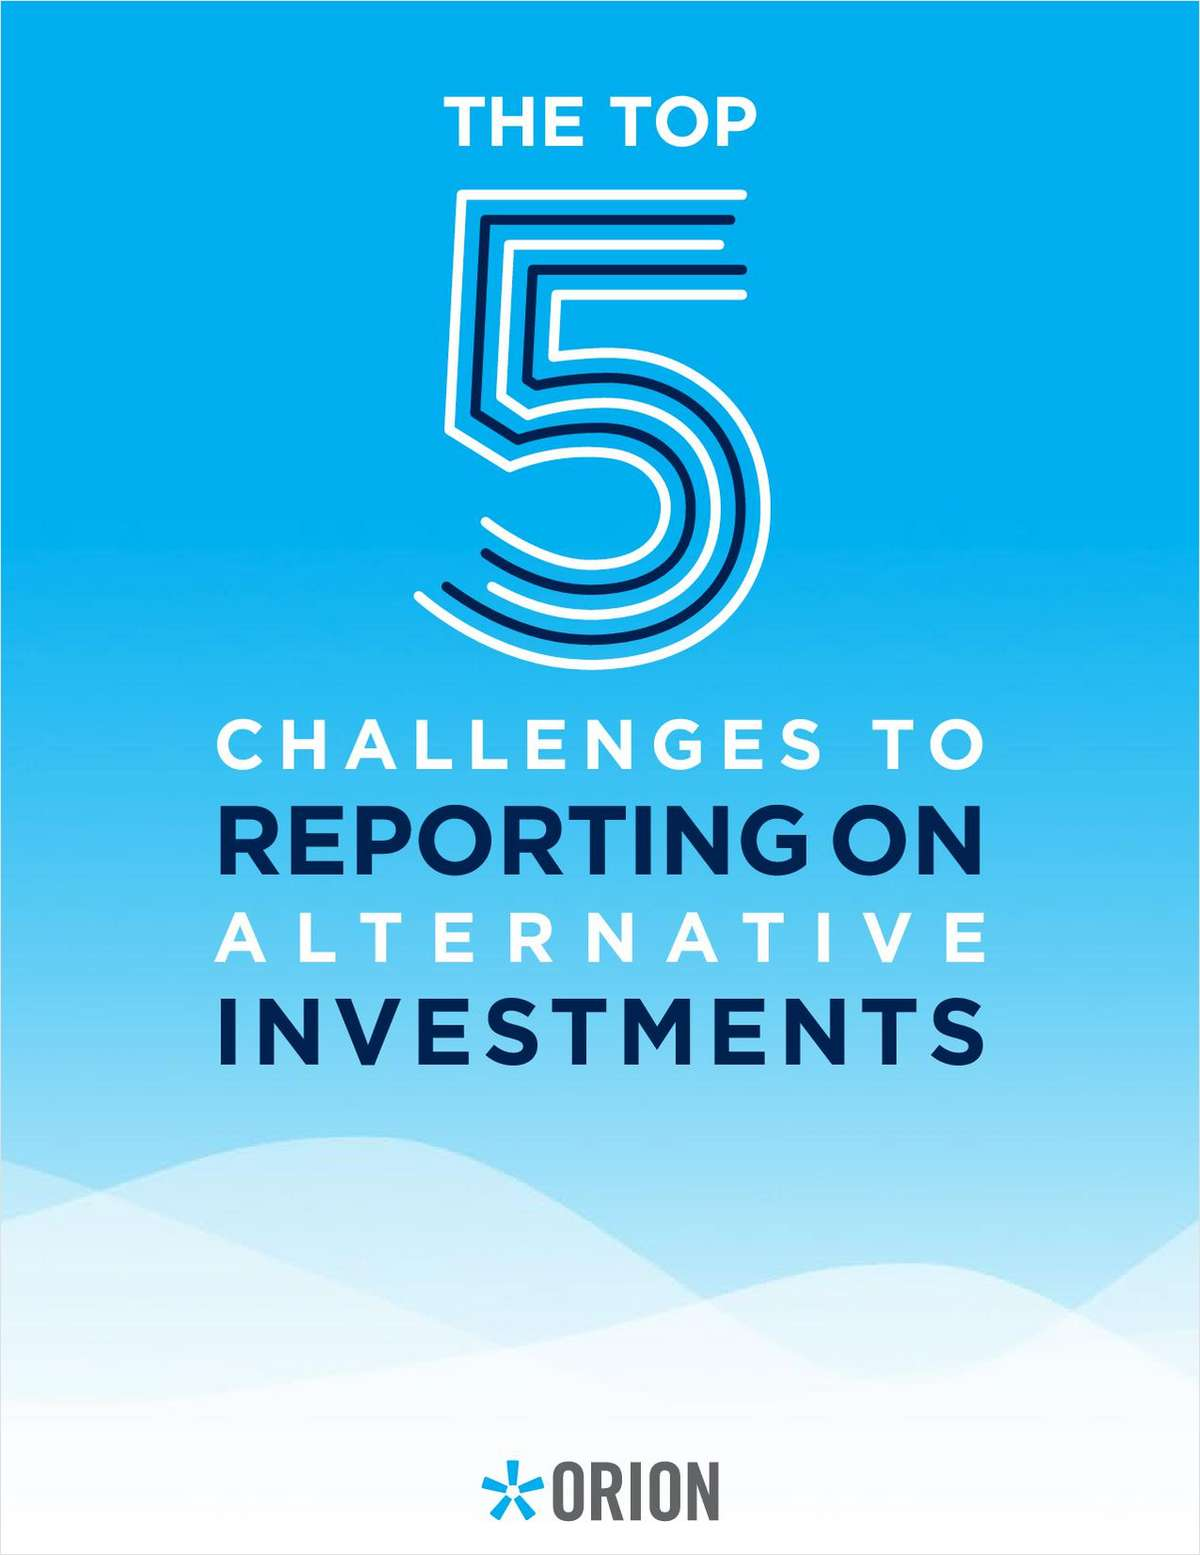 The Top 5 Challenges to Reporting on Alternative Investments